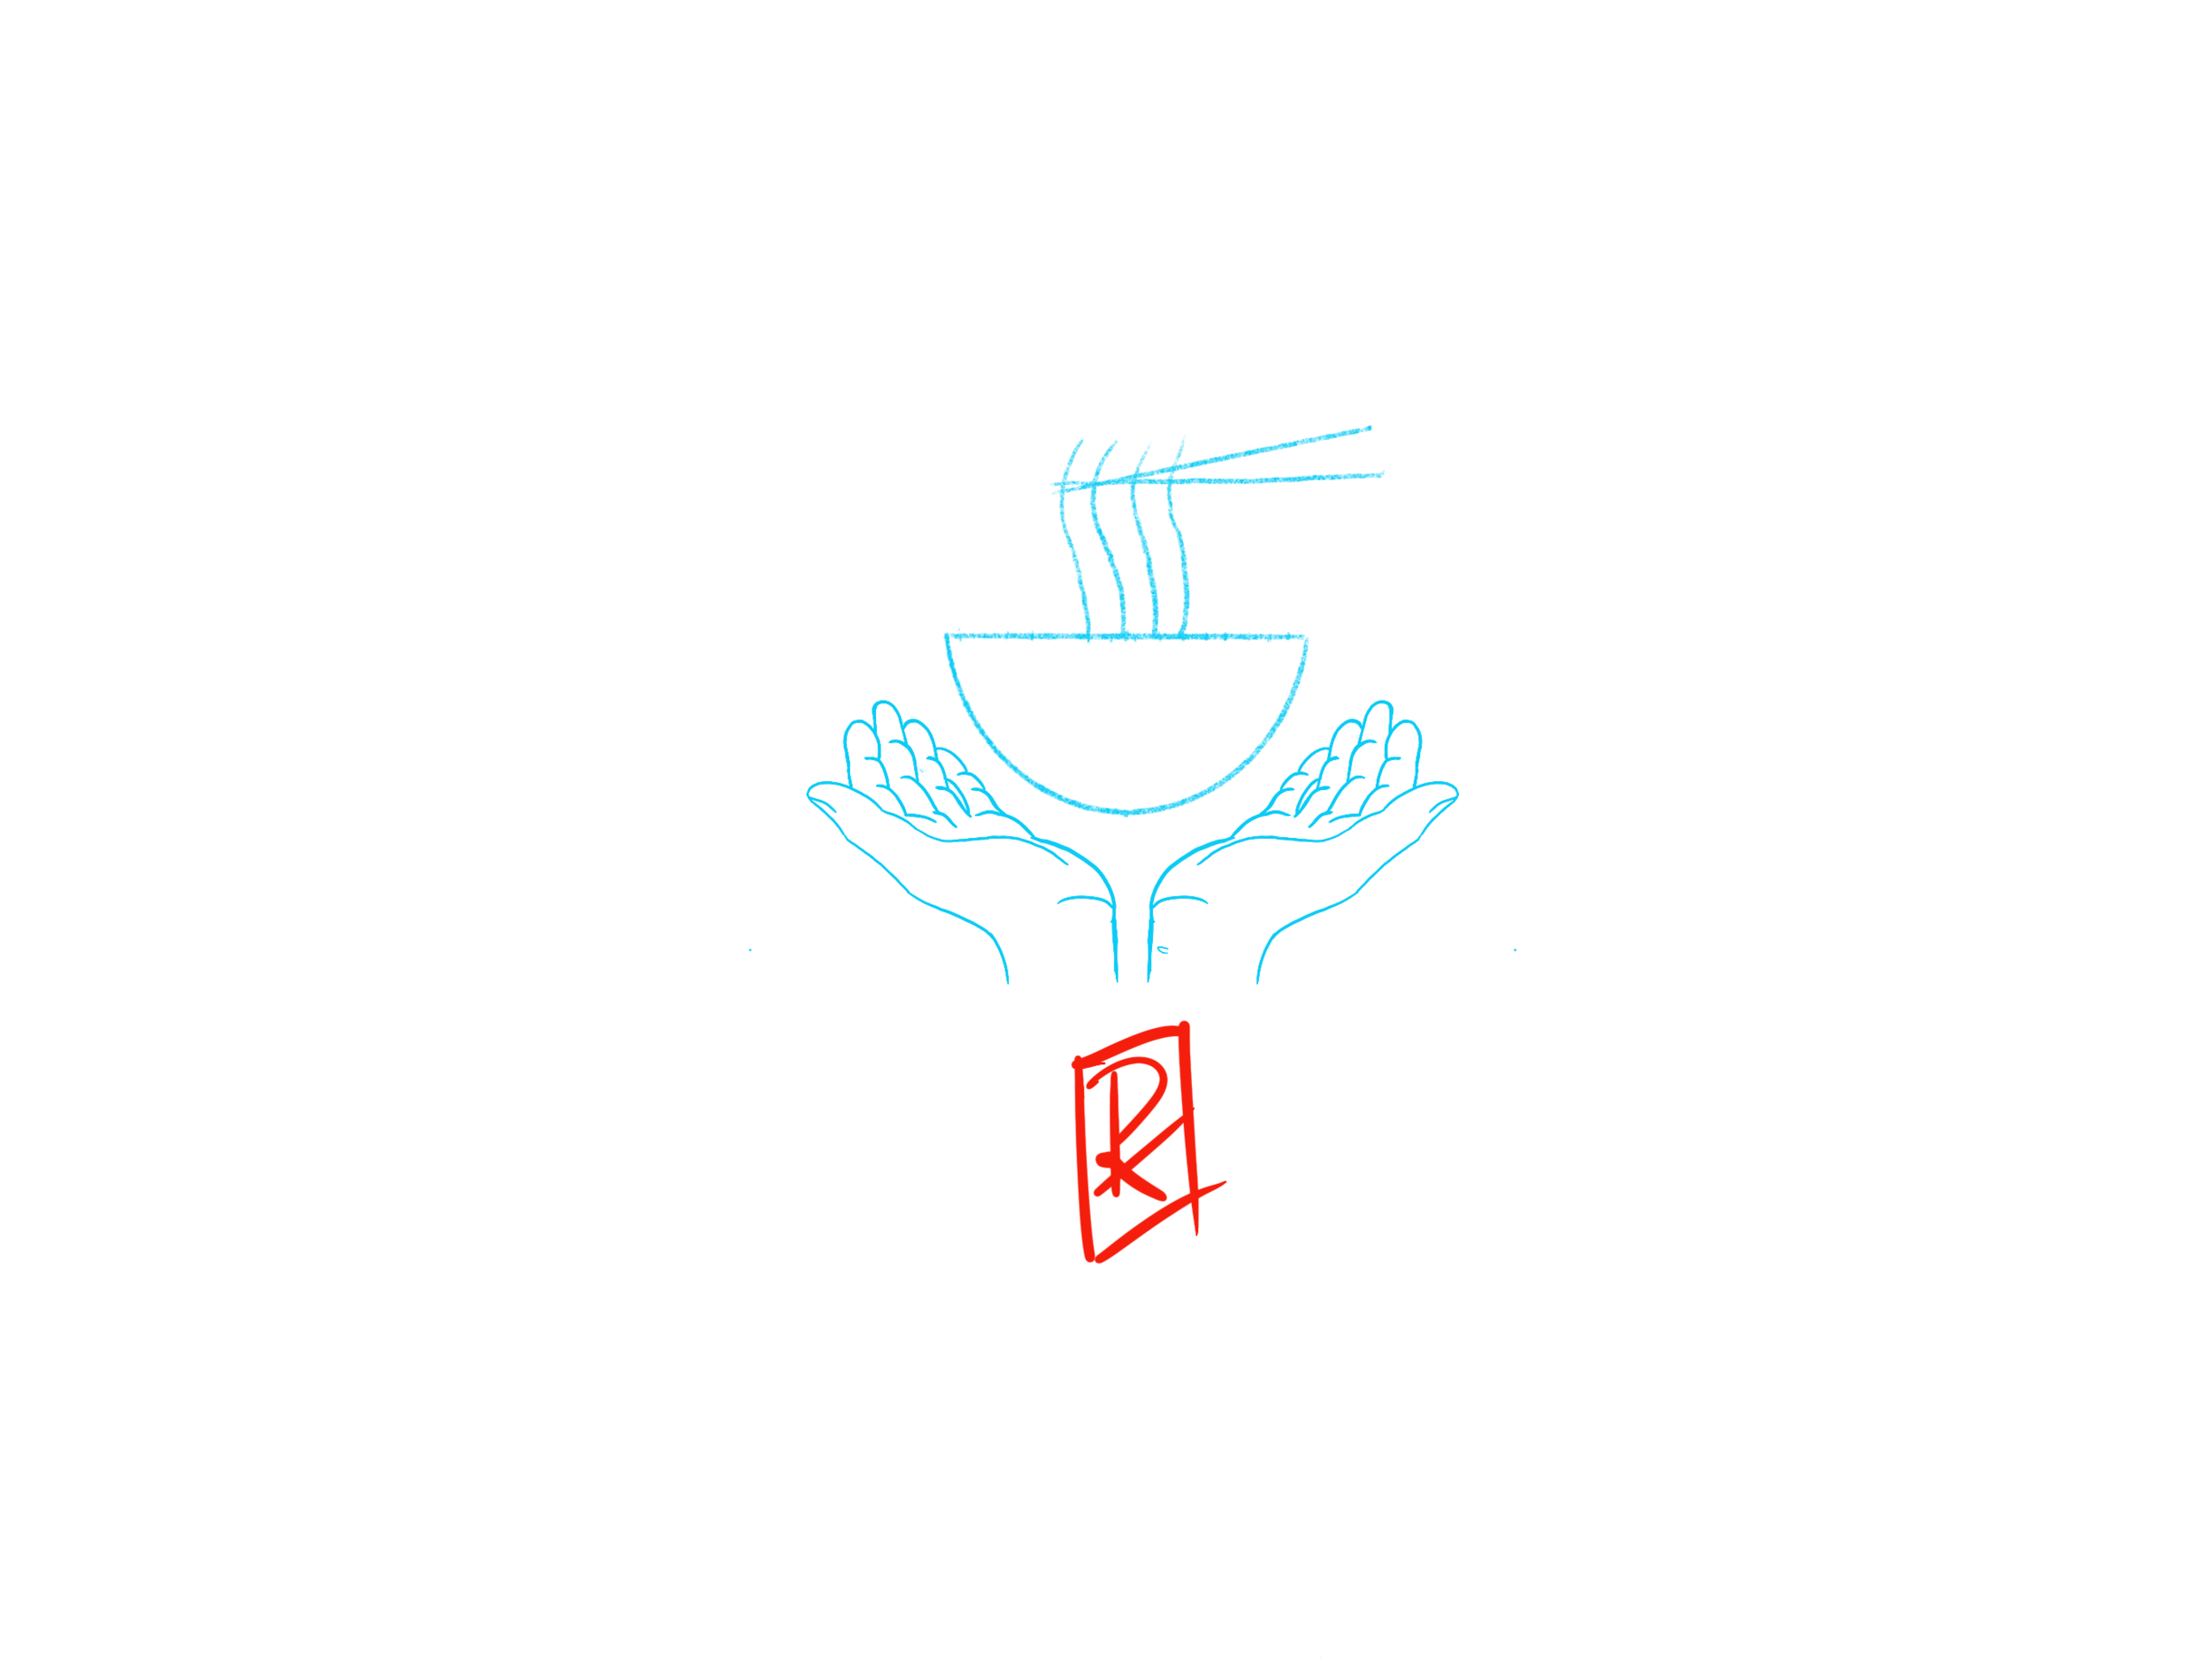 Fig. 6 - Hands with Soup Bowl and Stamp Overlay